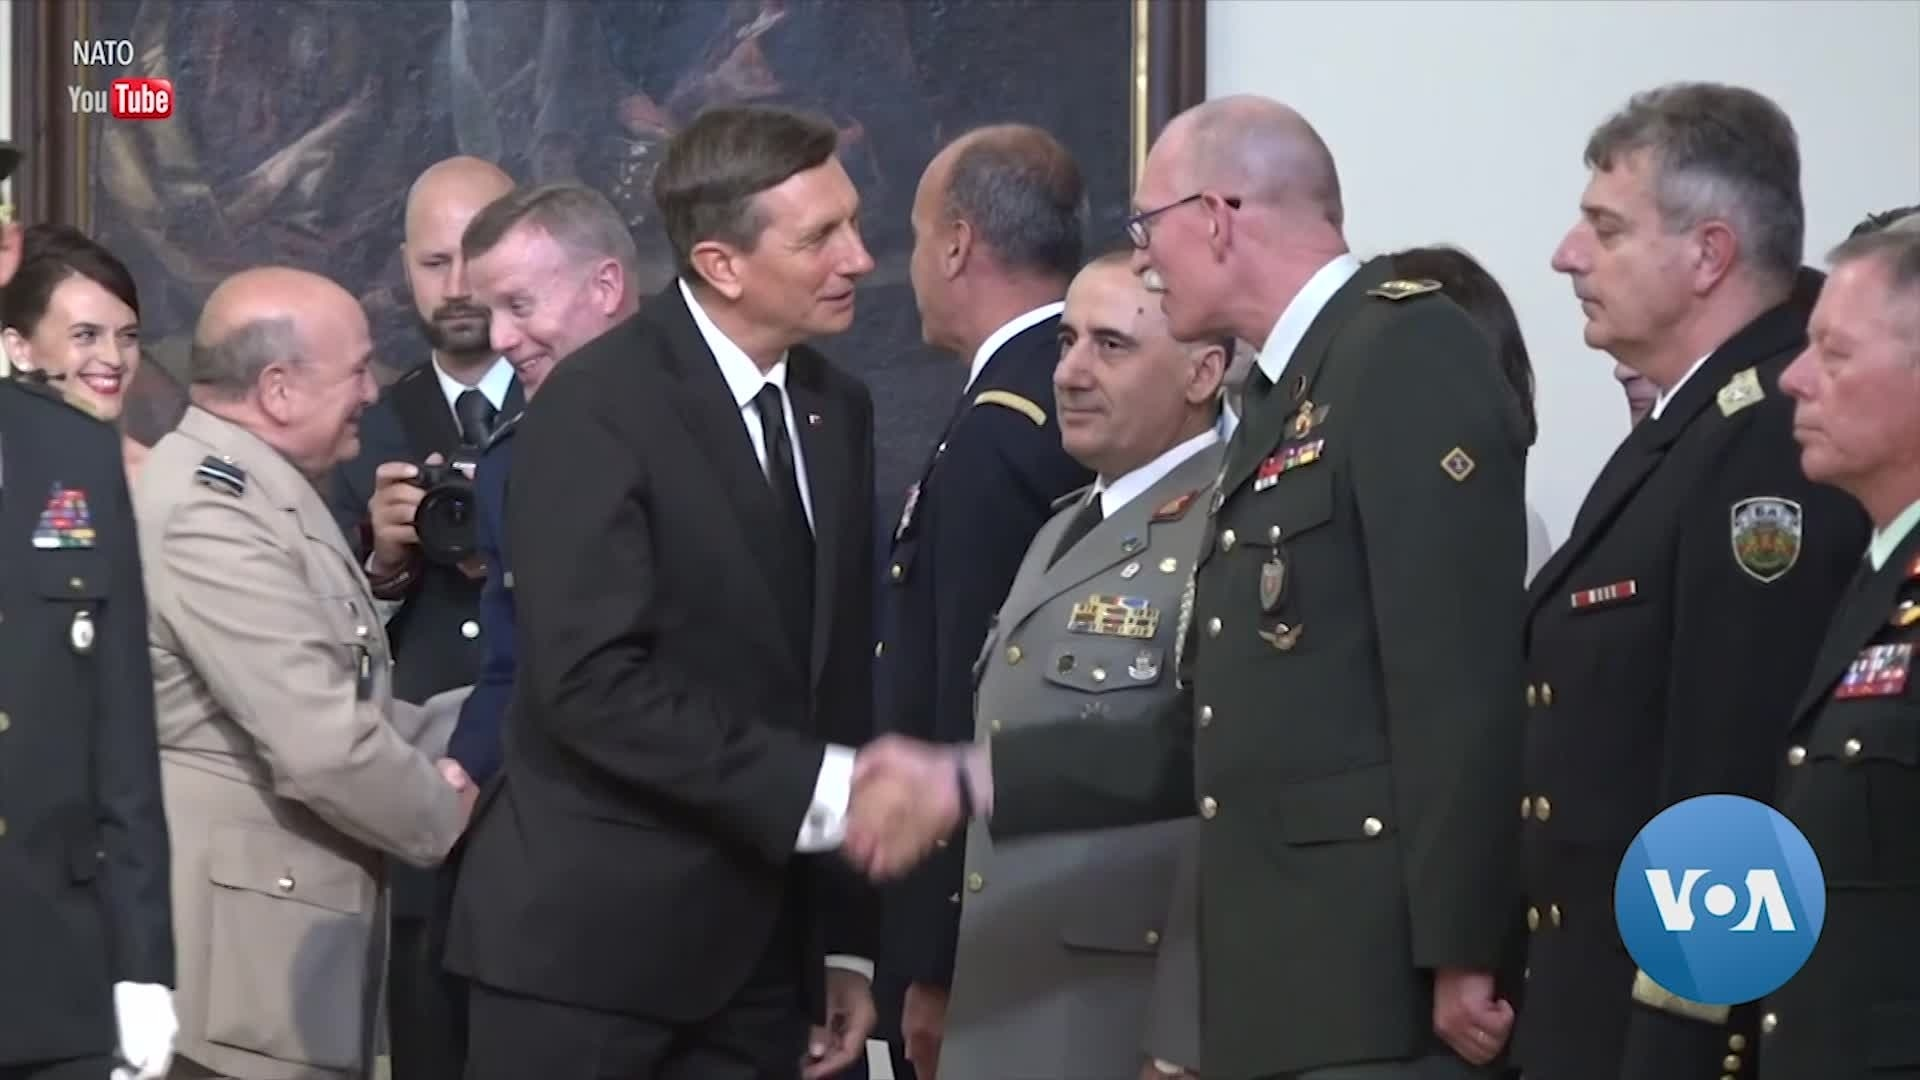 NATO Commander Foresees Violence, Hopes to Bring Stability in Afghan Elections